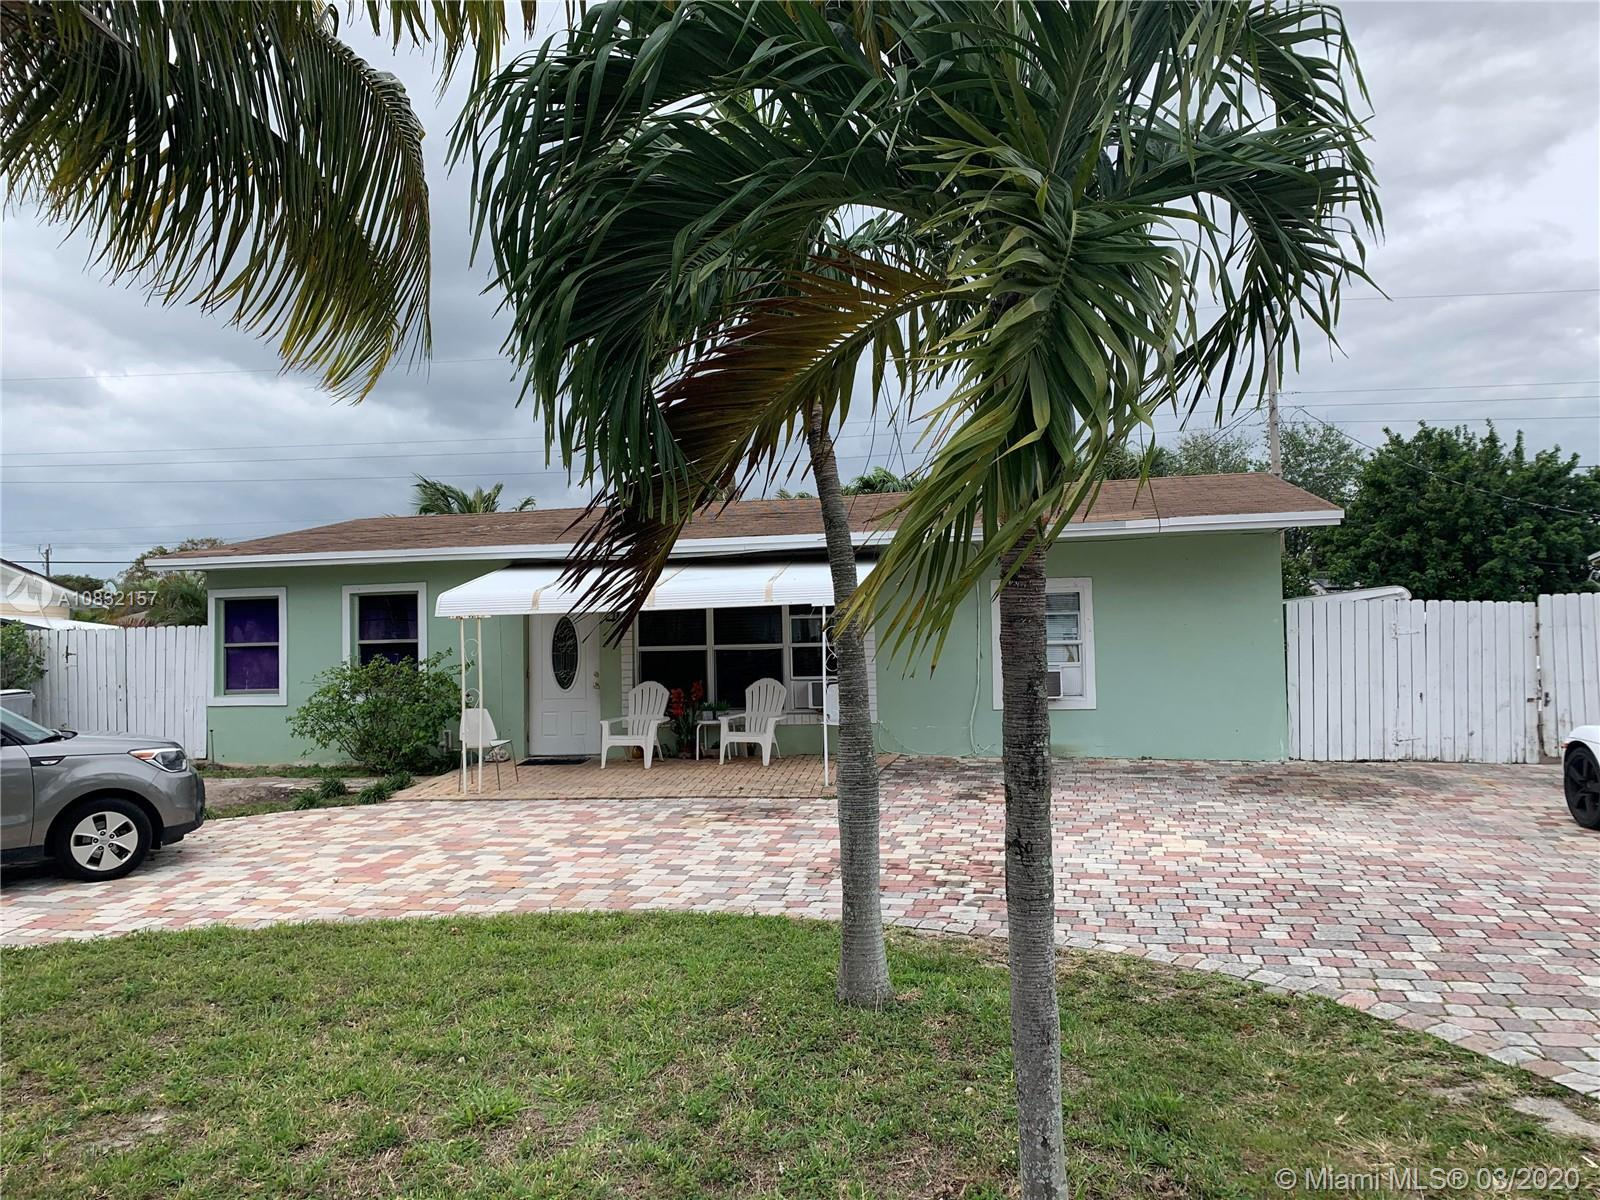 Immaculate 3/2 home in Pompano Beach; in law unit with kitchen and bath that can be used as an effic